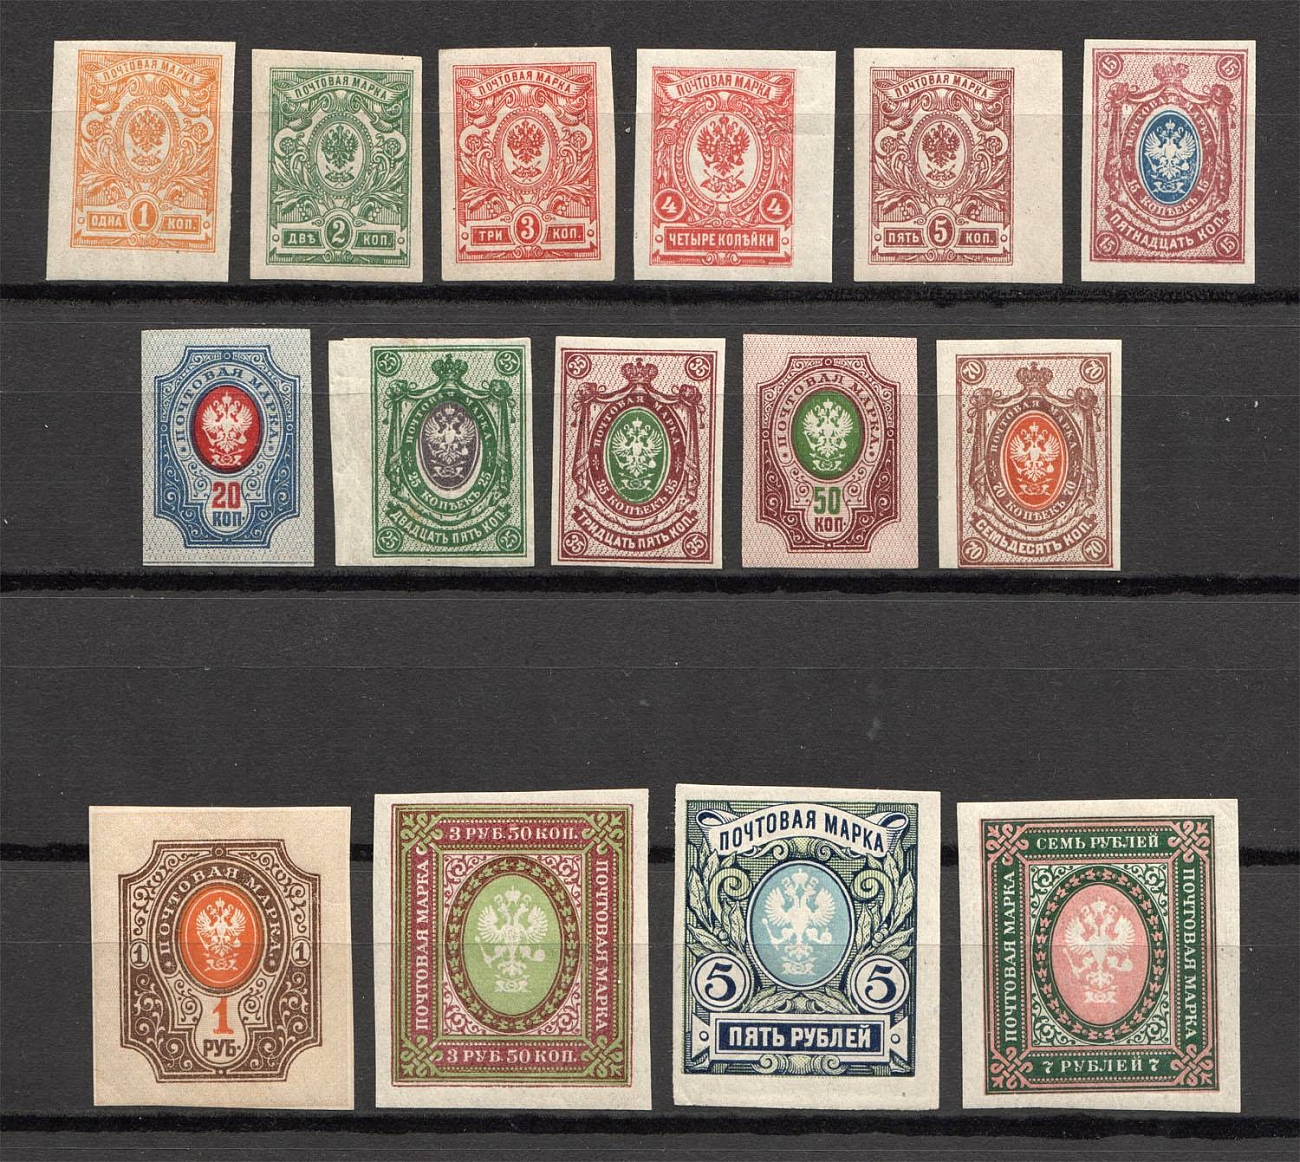 Lot 14 - Russia: Empire & Offices Abroad Russian Empire Issues -  OldLouis Auctions Russia: Empire & Offices Abroad - Rare Stamps Auction №8